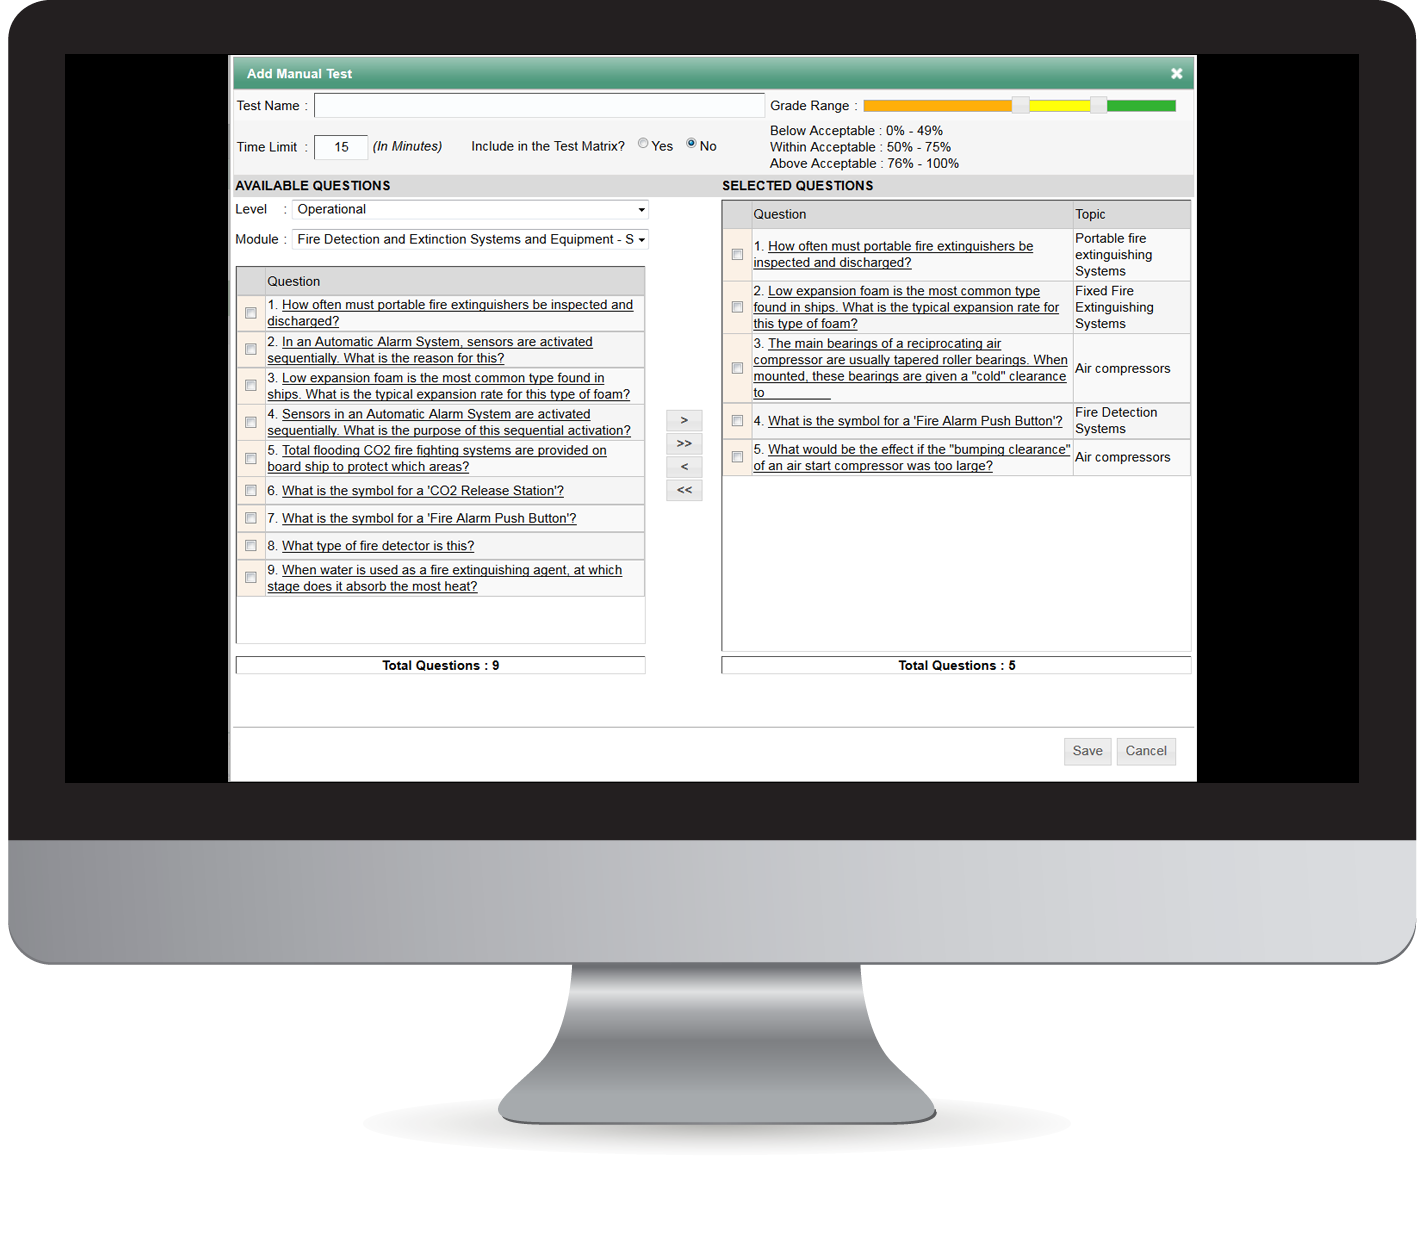 iTEST Assessment System Features Test Manager